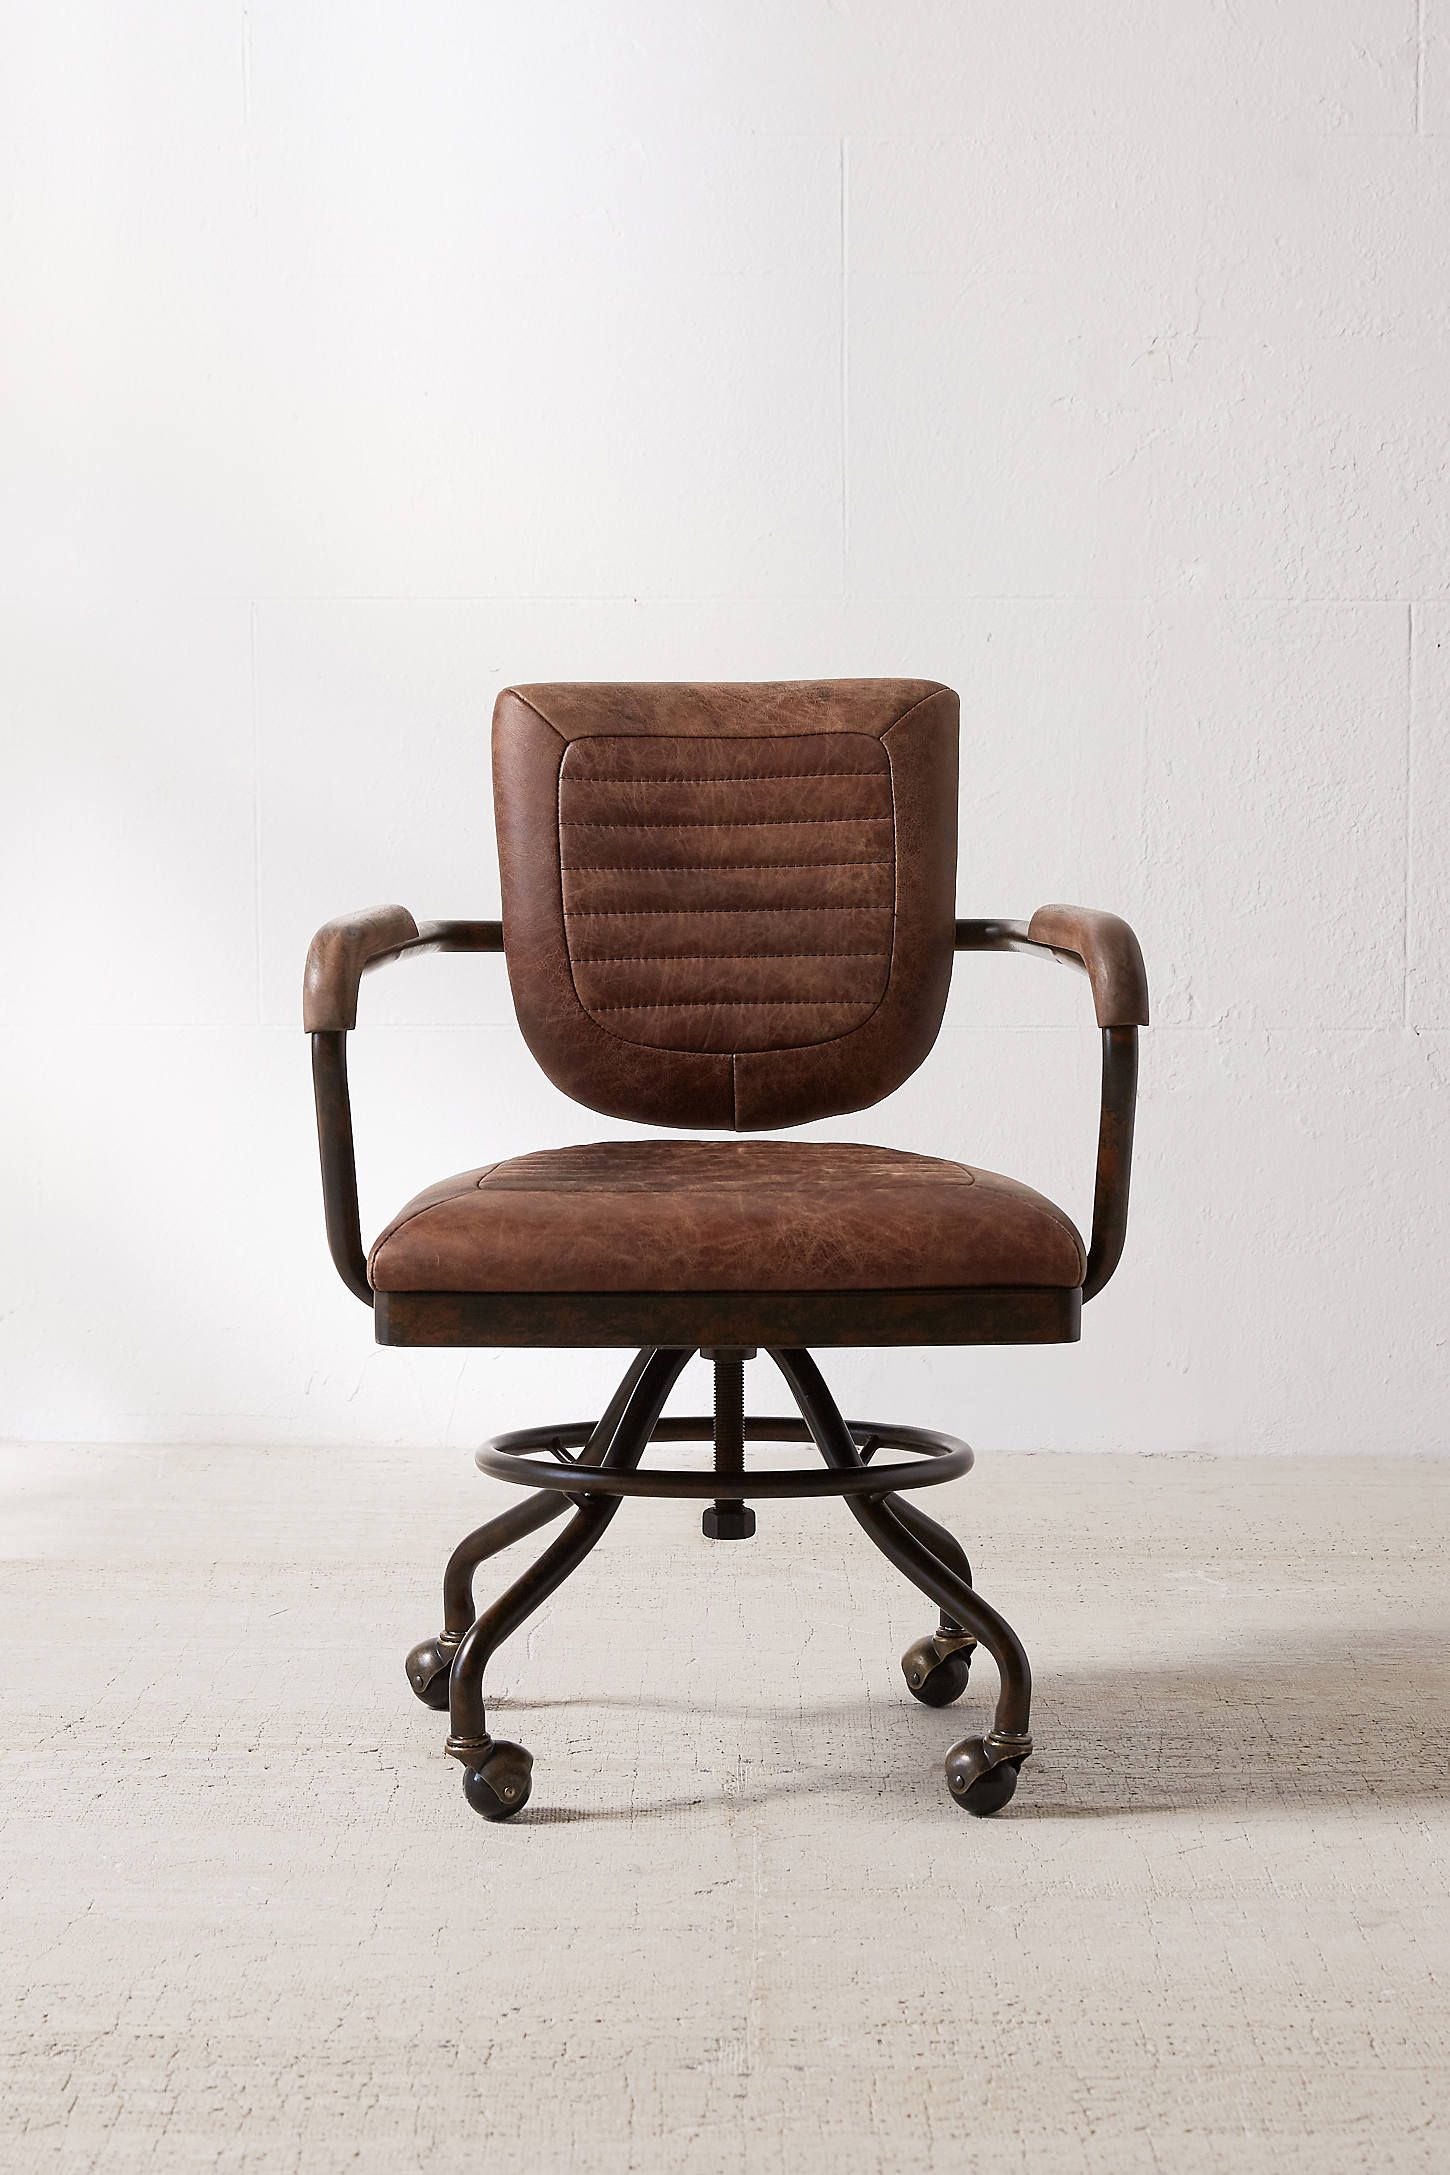 Foster Leather Desk Chair Leather desk, Desk chair, Chair